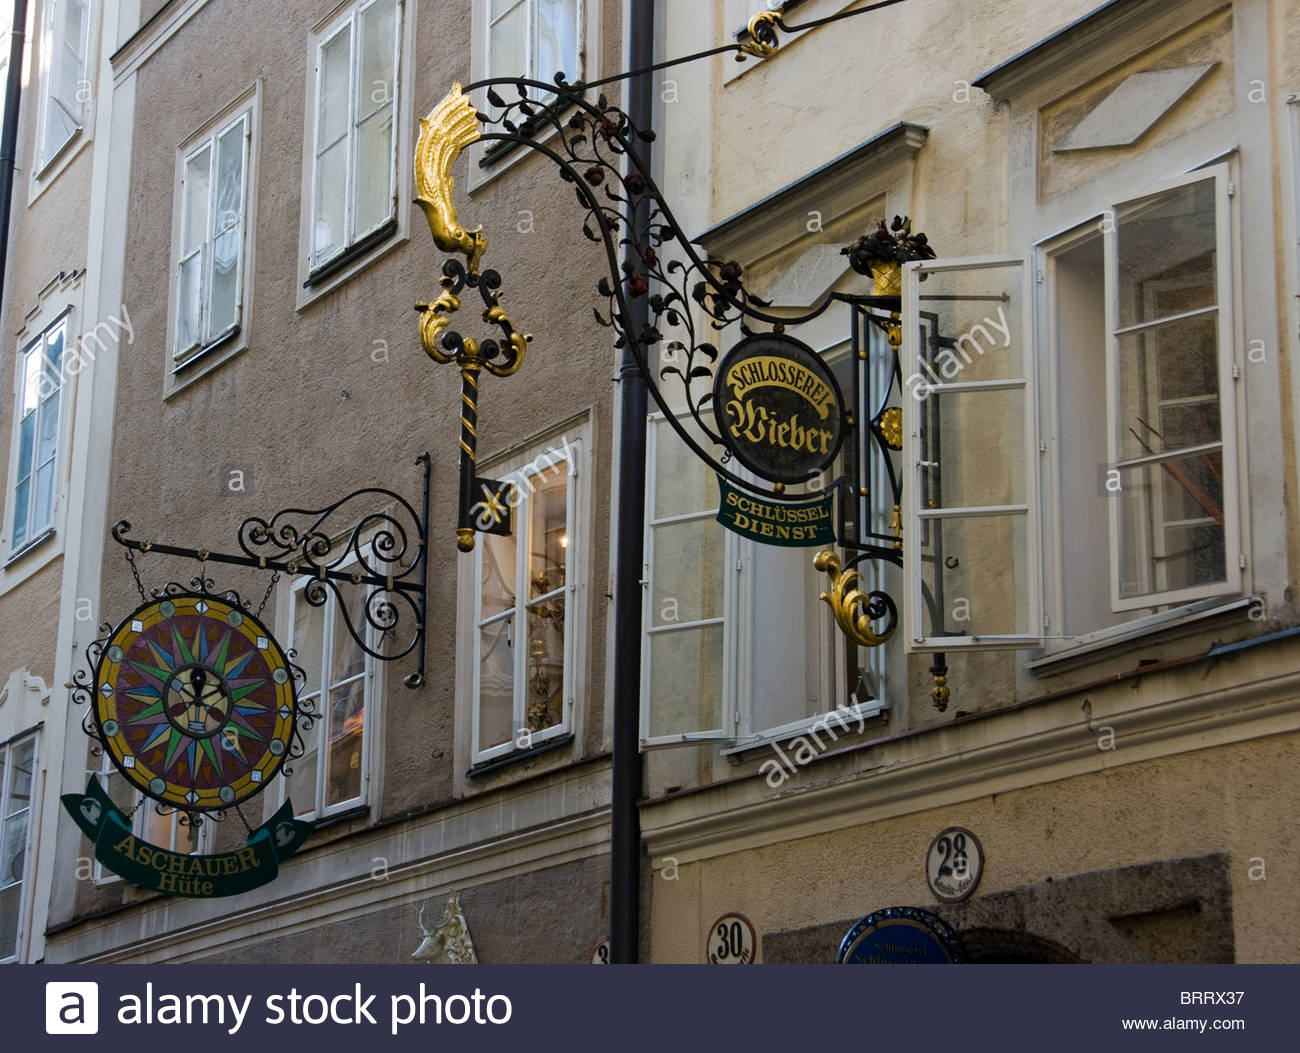 Austria Salzburg Ornate Shop Signs Locksmith - Stock Image